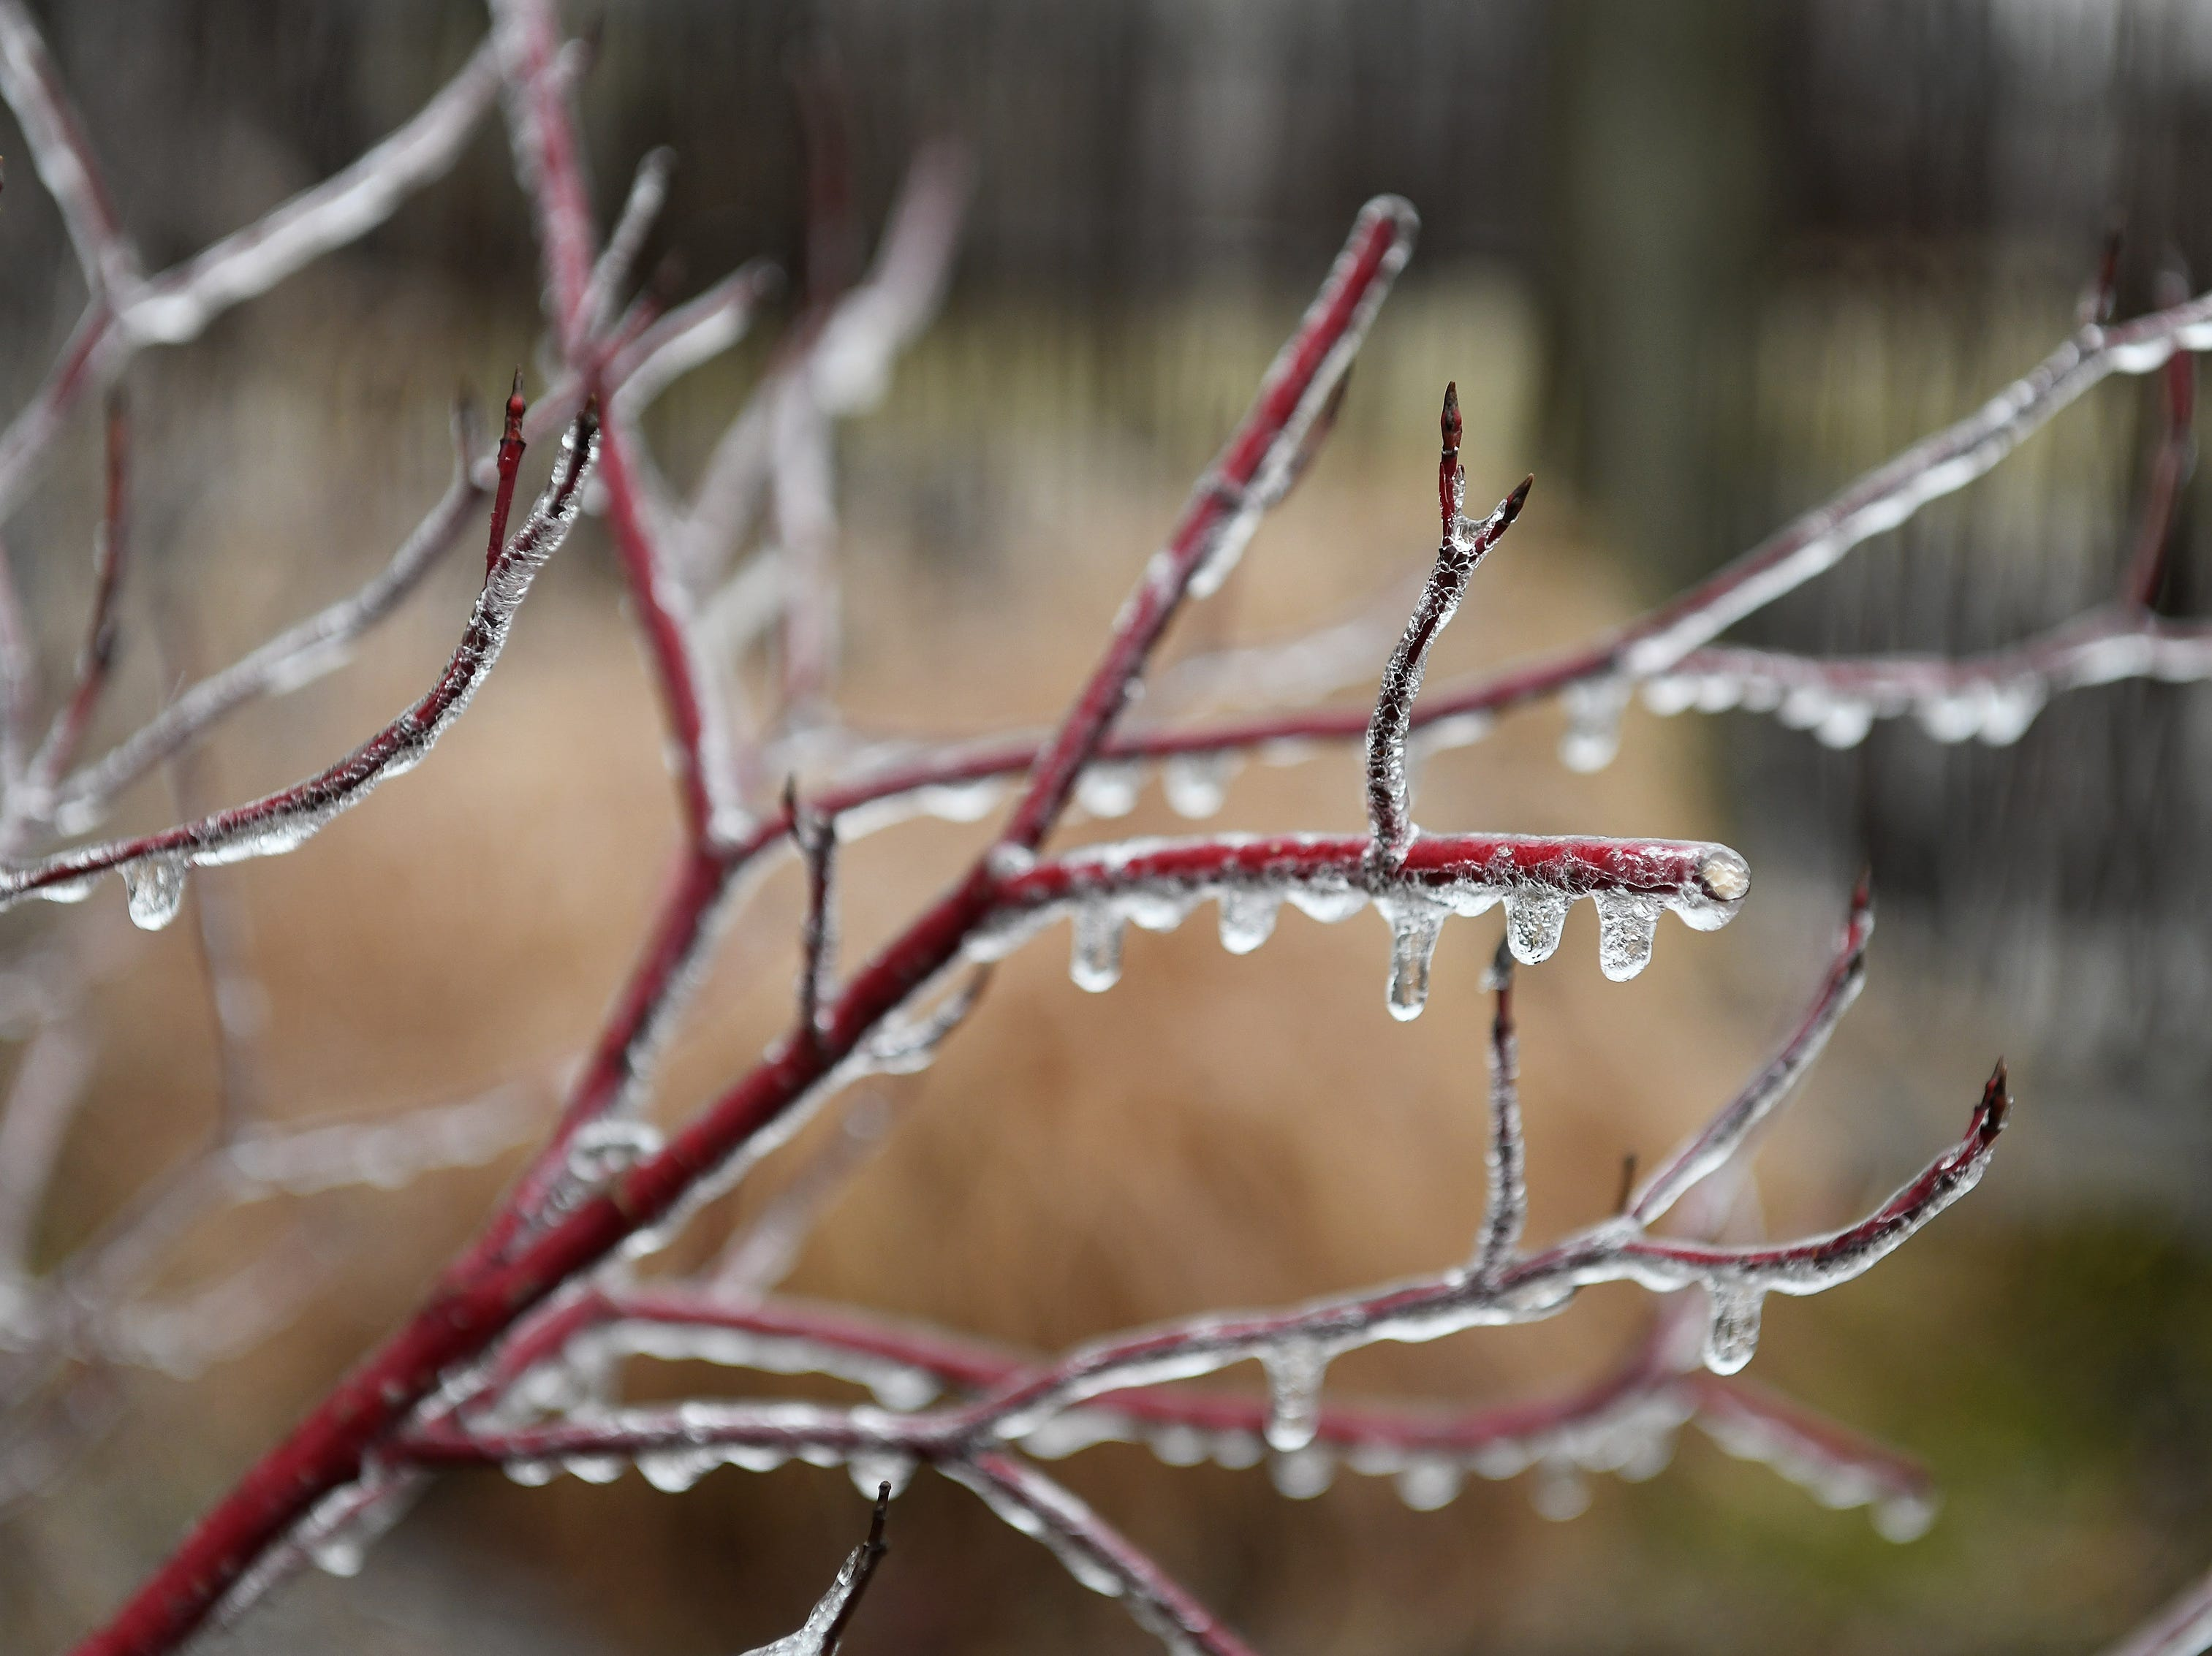 Ice covers the thin branches of a bush in Detroit on Wednesday.